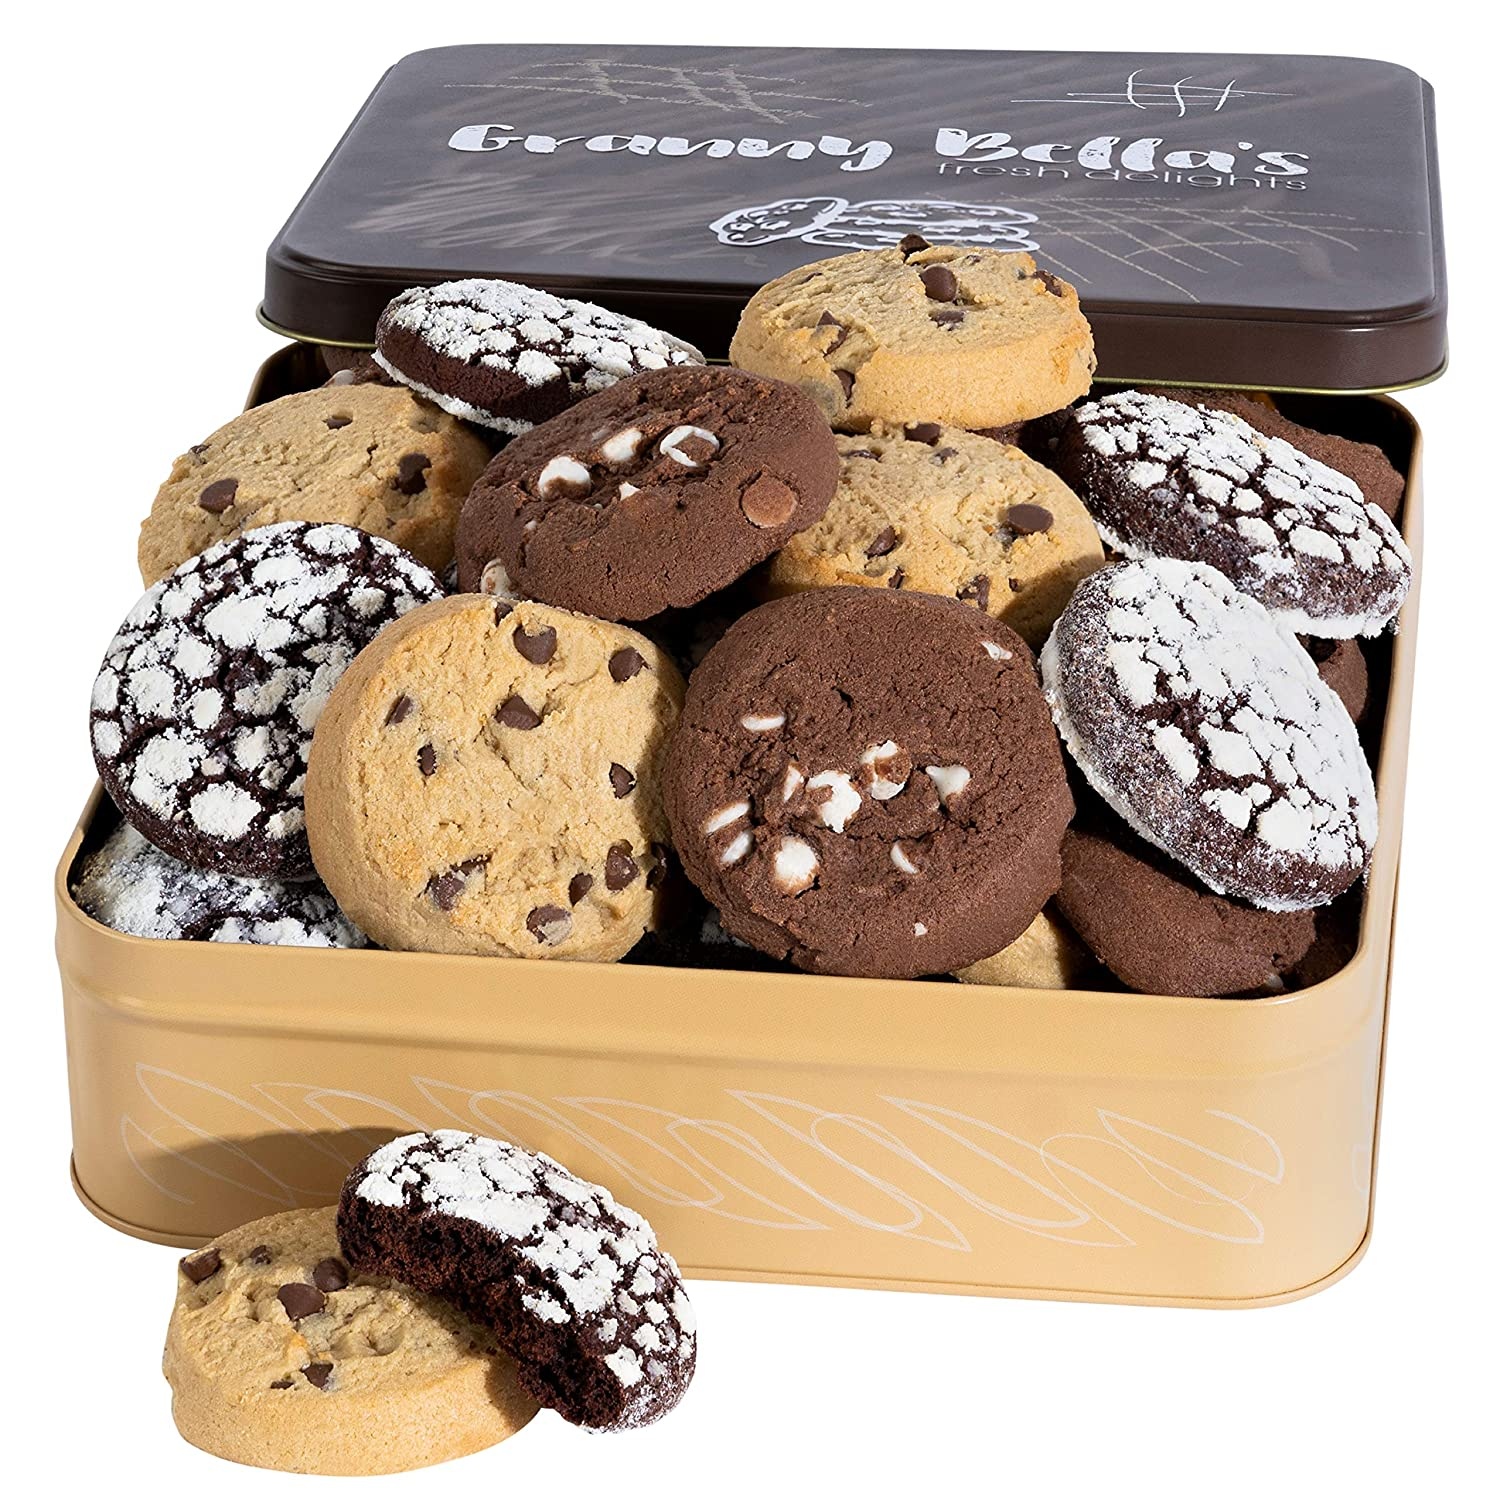 Granny Bella Soft Chocolate Chip Cookie Gift Basket for Women, 27 Homemade Fresh Bakery Cookies for Mom & Grandma from Daughter & Son Gourmet Food Gifts, Holiday & Birthday Tin Fathers & Mothers Day